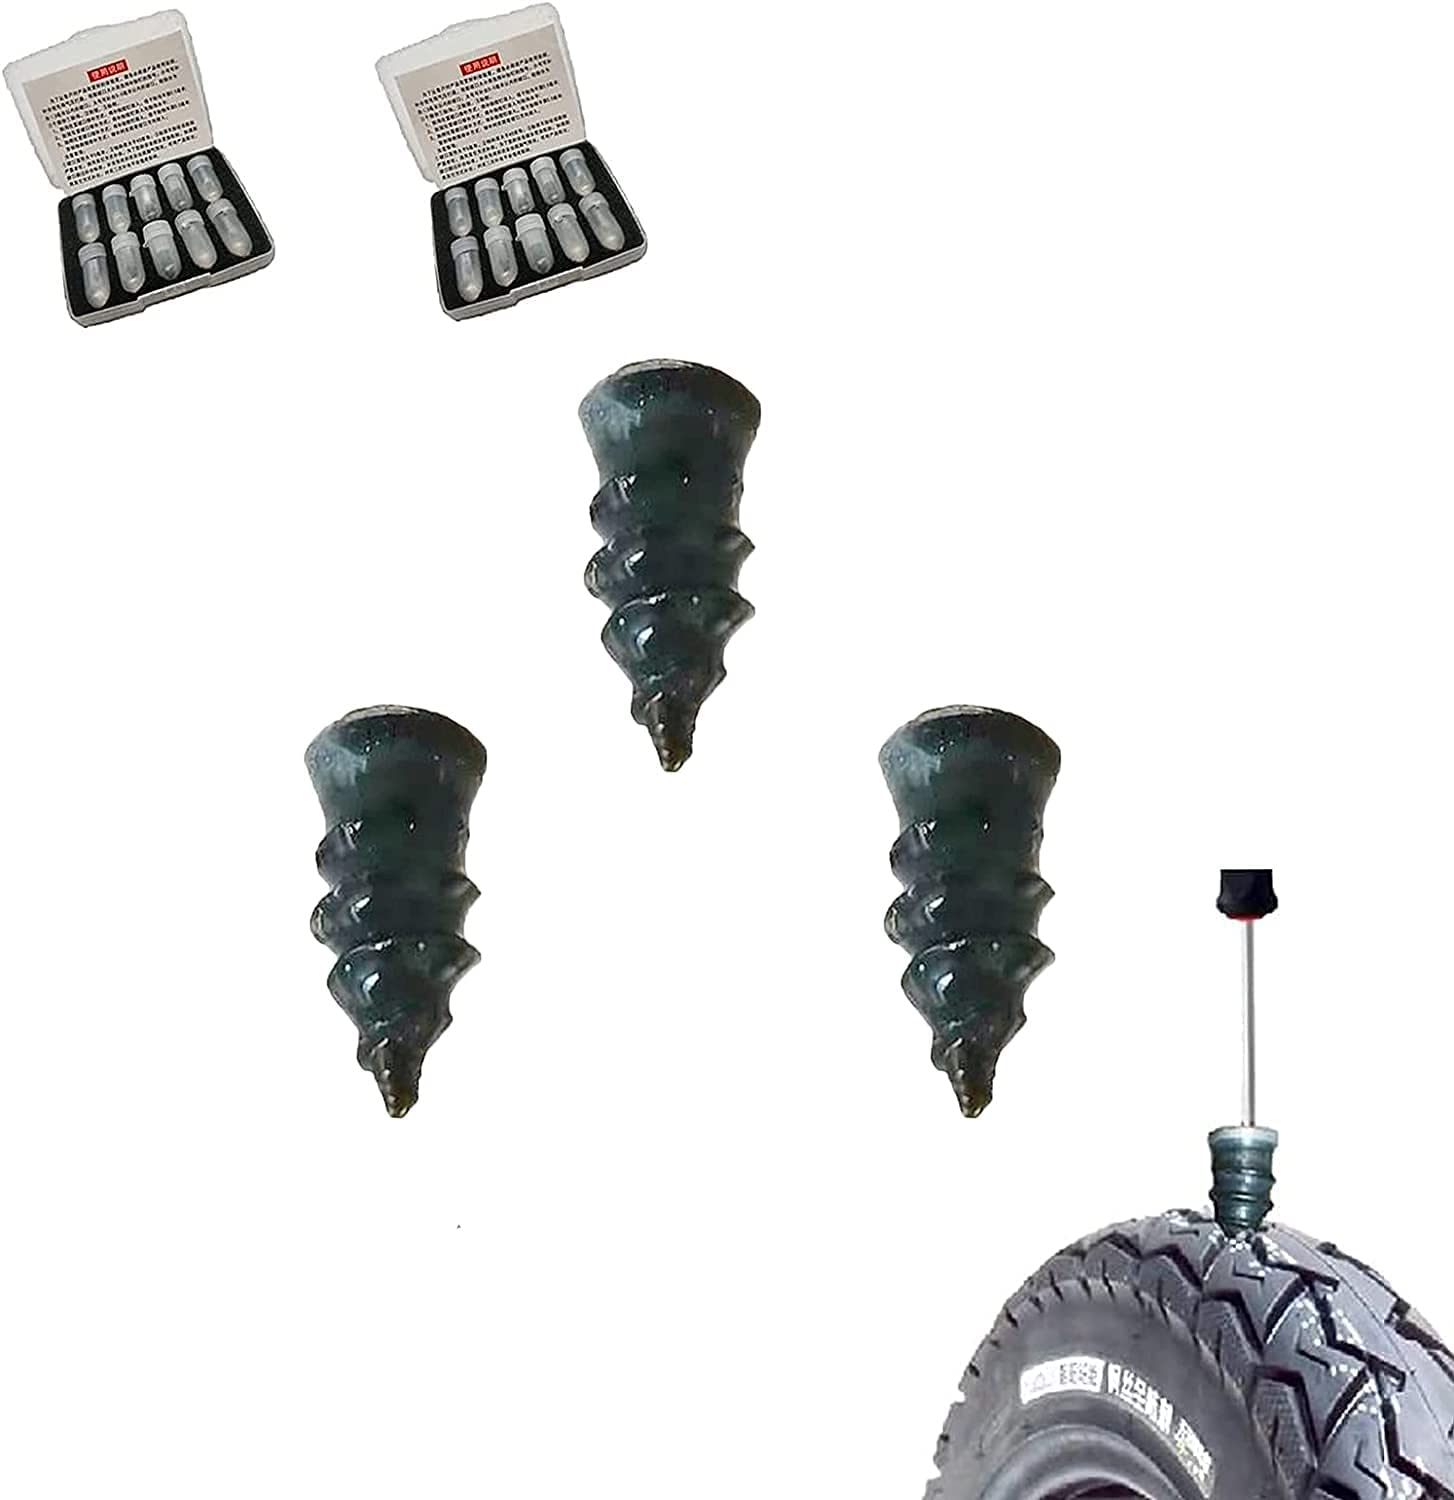 youfenghui 10 20pcs Tire Rubber Nails Safety and NEW before selling trust Spiral Repair